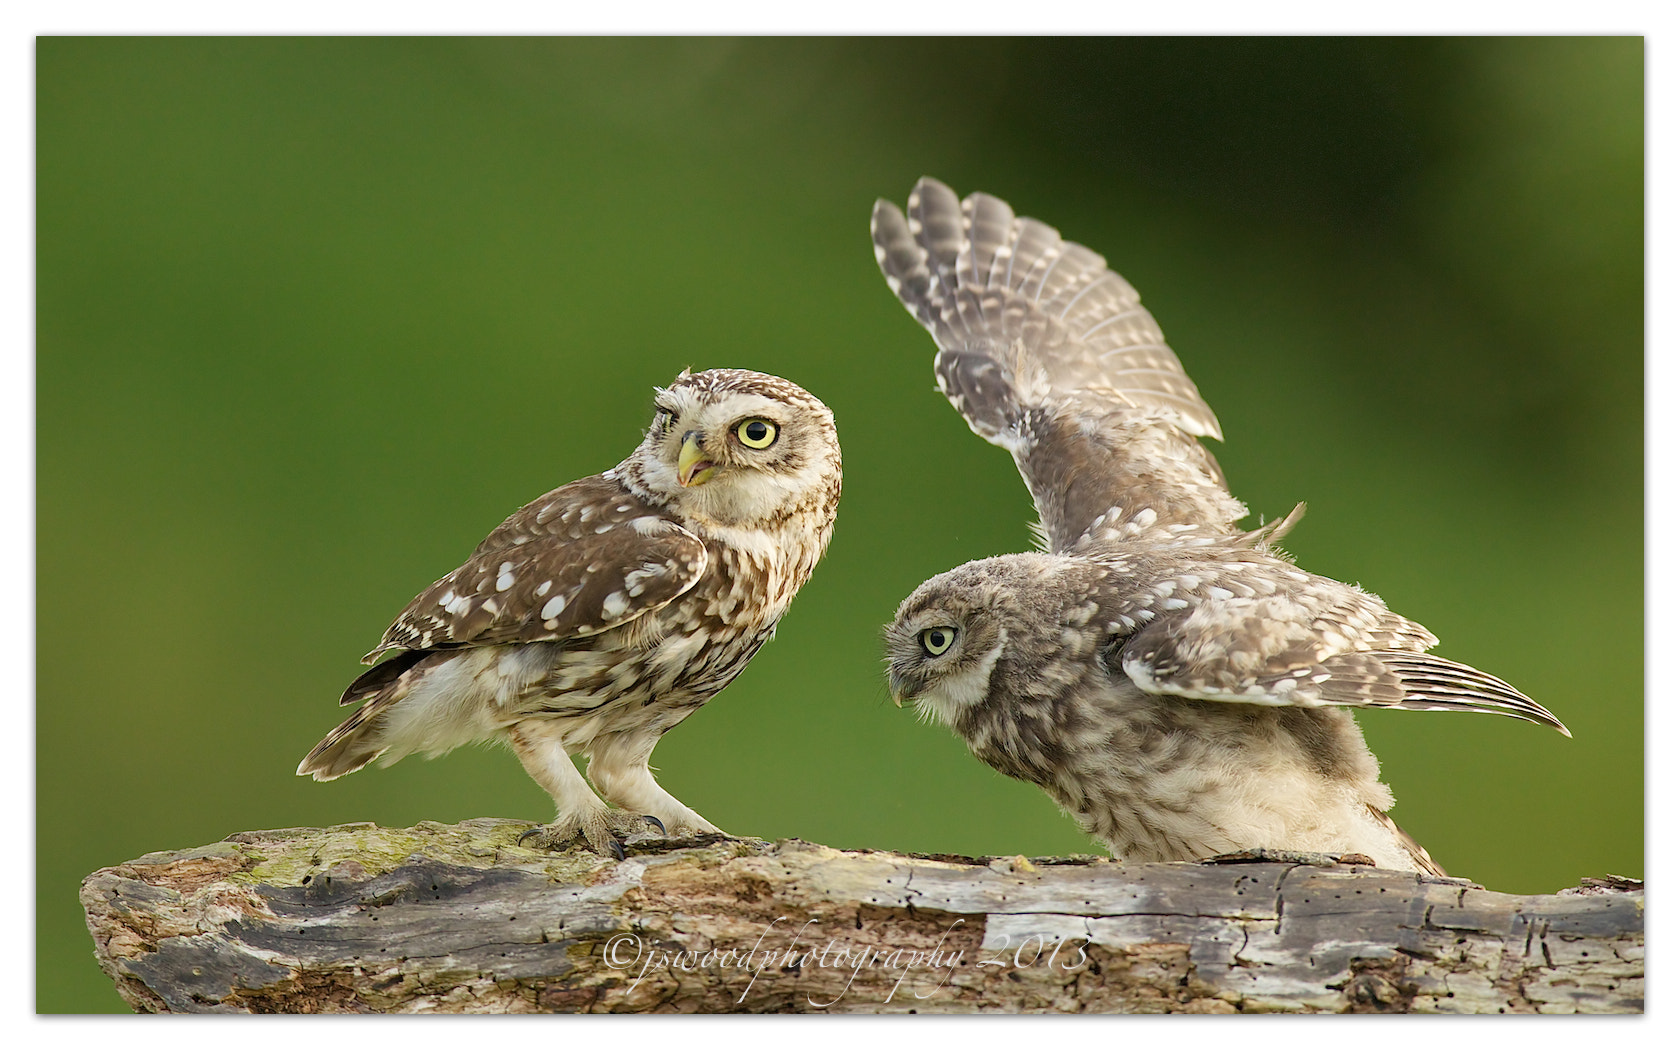 Photograph Parent and Young by Jason Wood on 500px